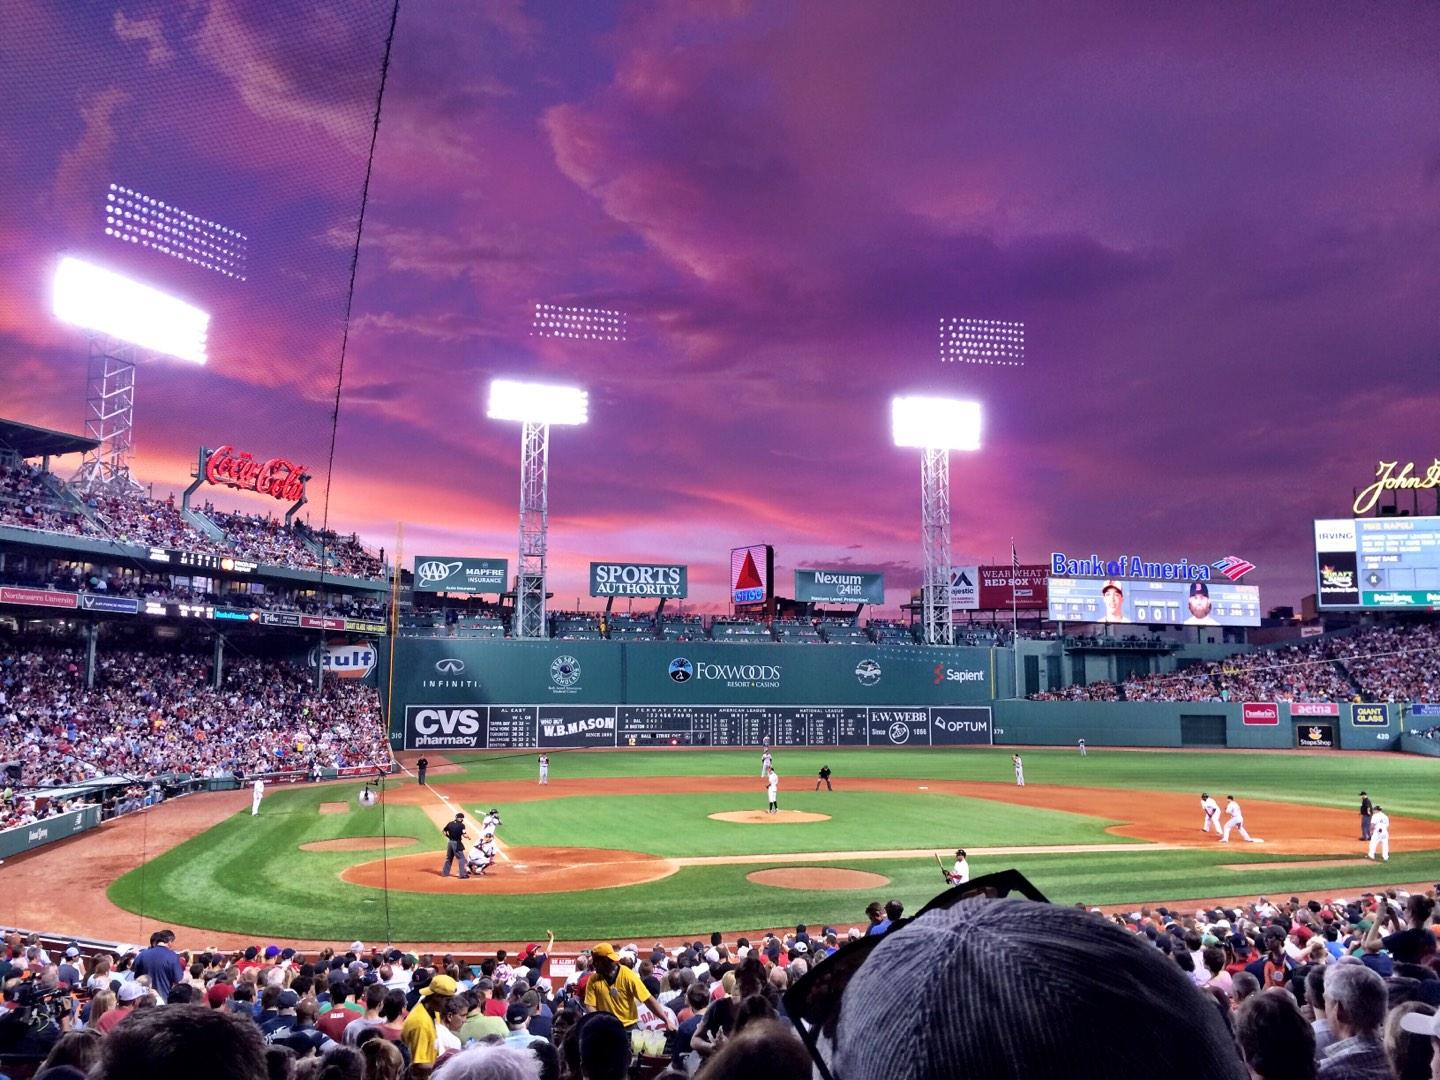 Fenway Park Section Loge Box 125 Row LL Seat 2